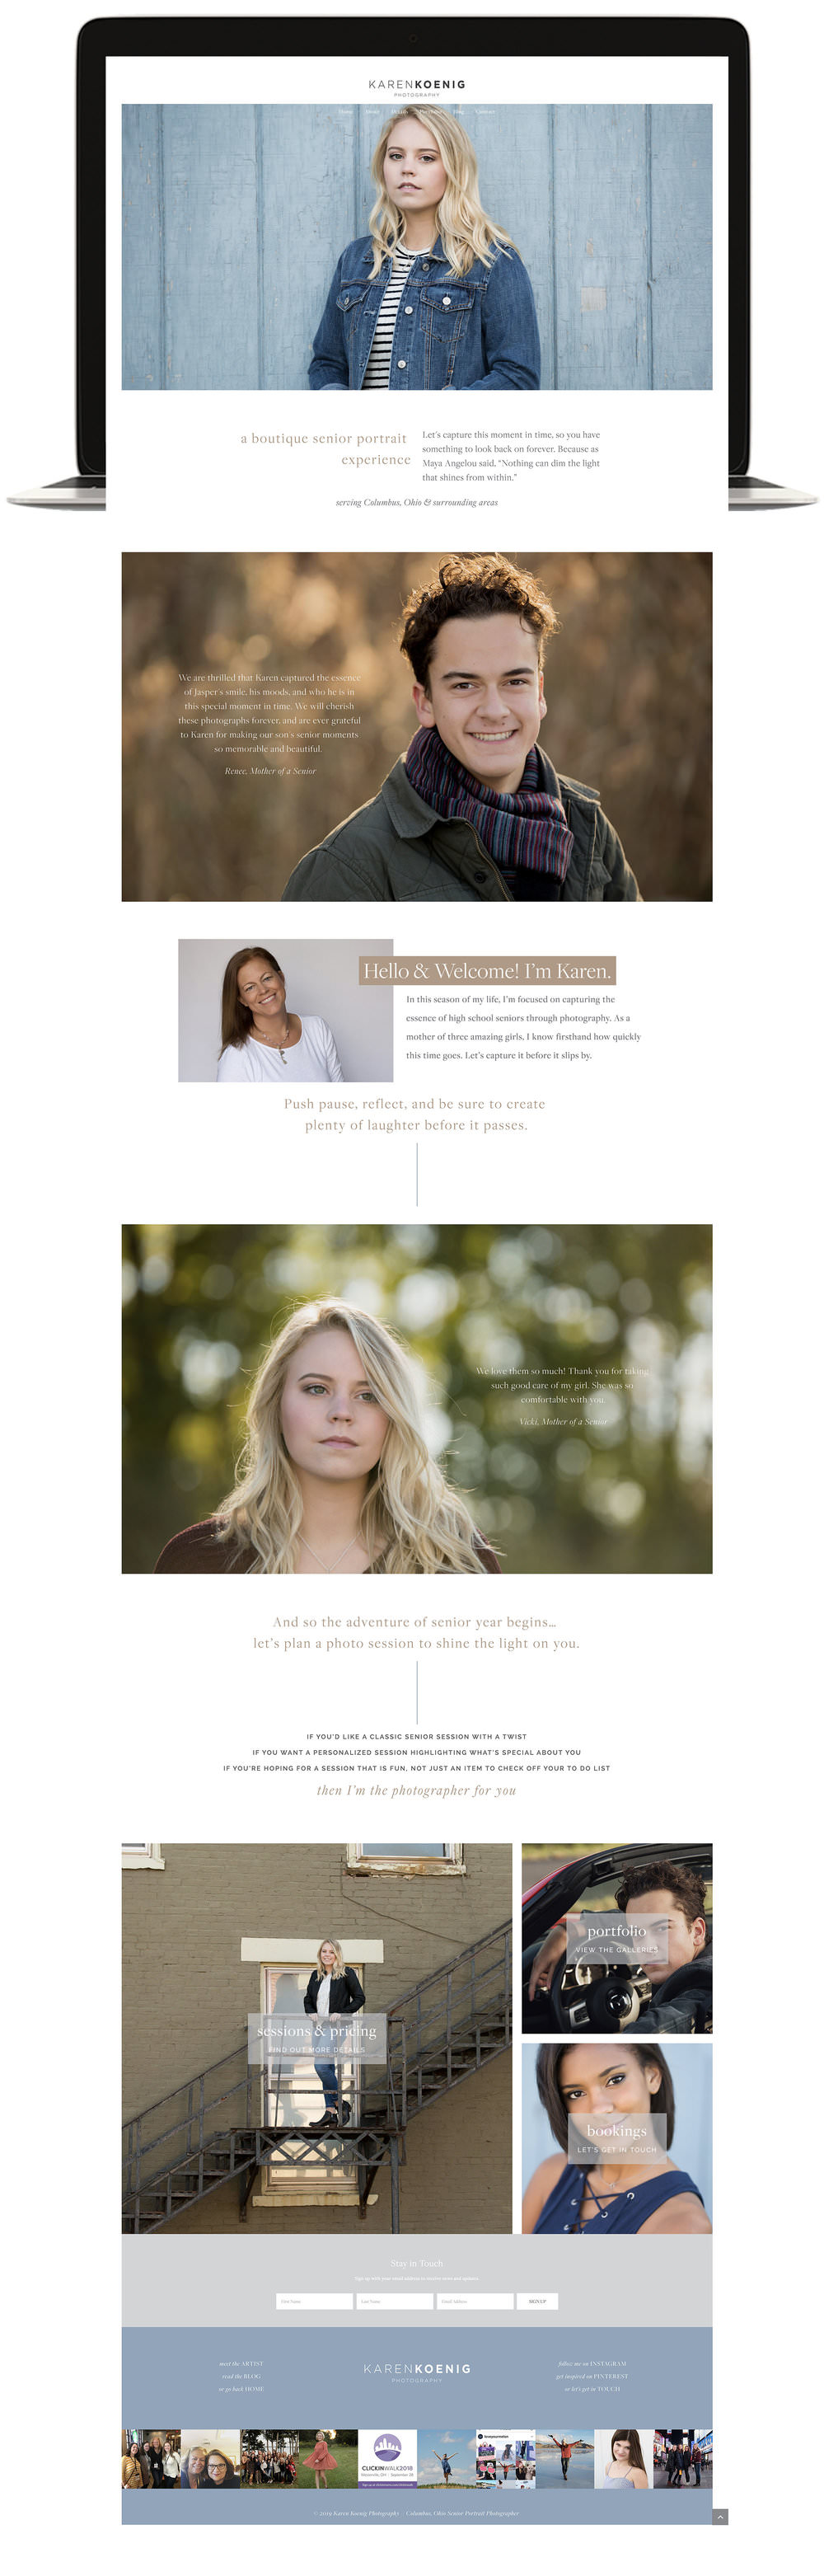 Karen Koenig Photography Squarespace Template restyle